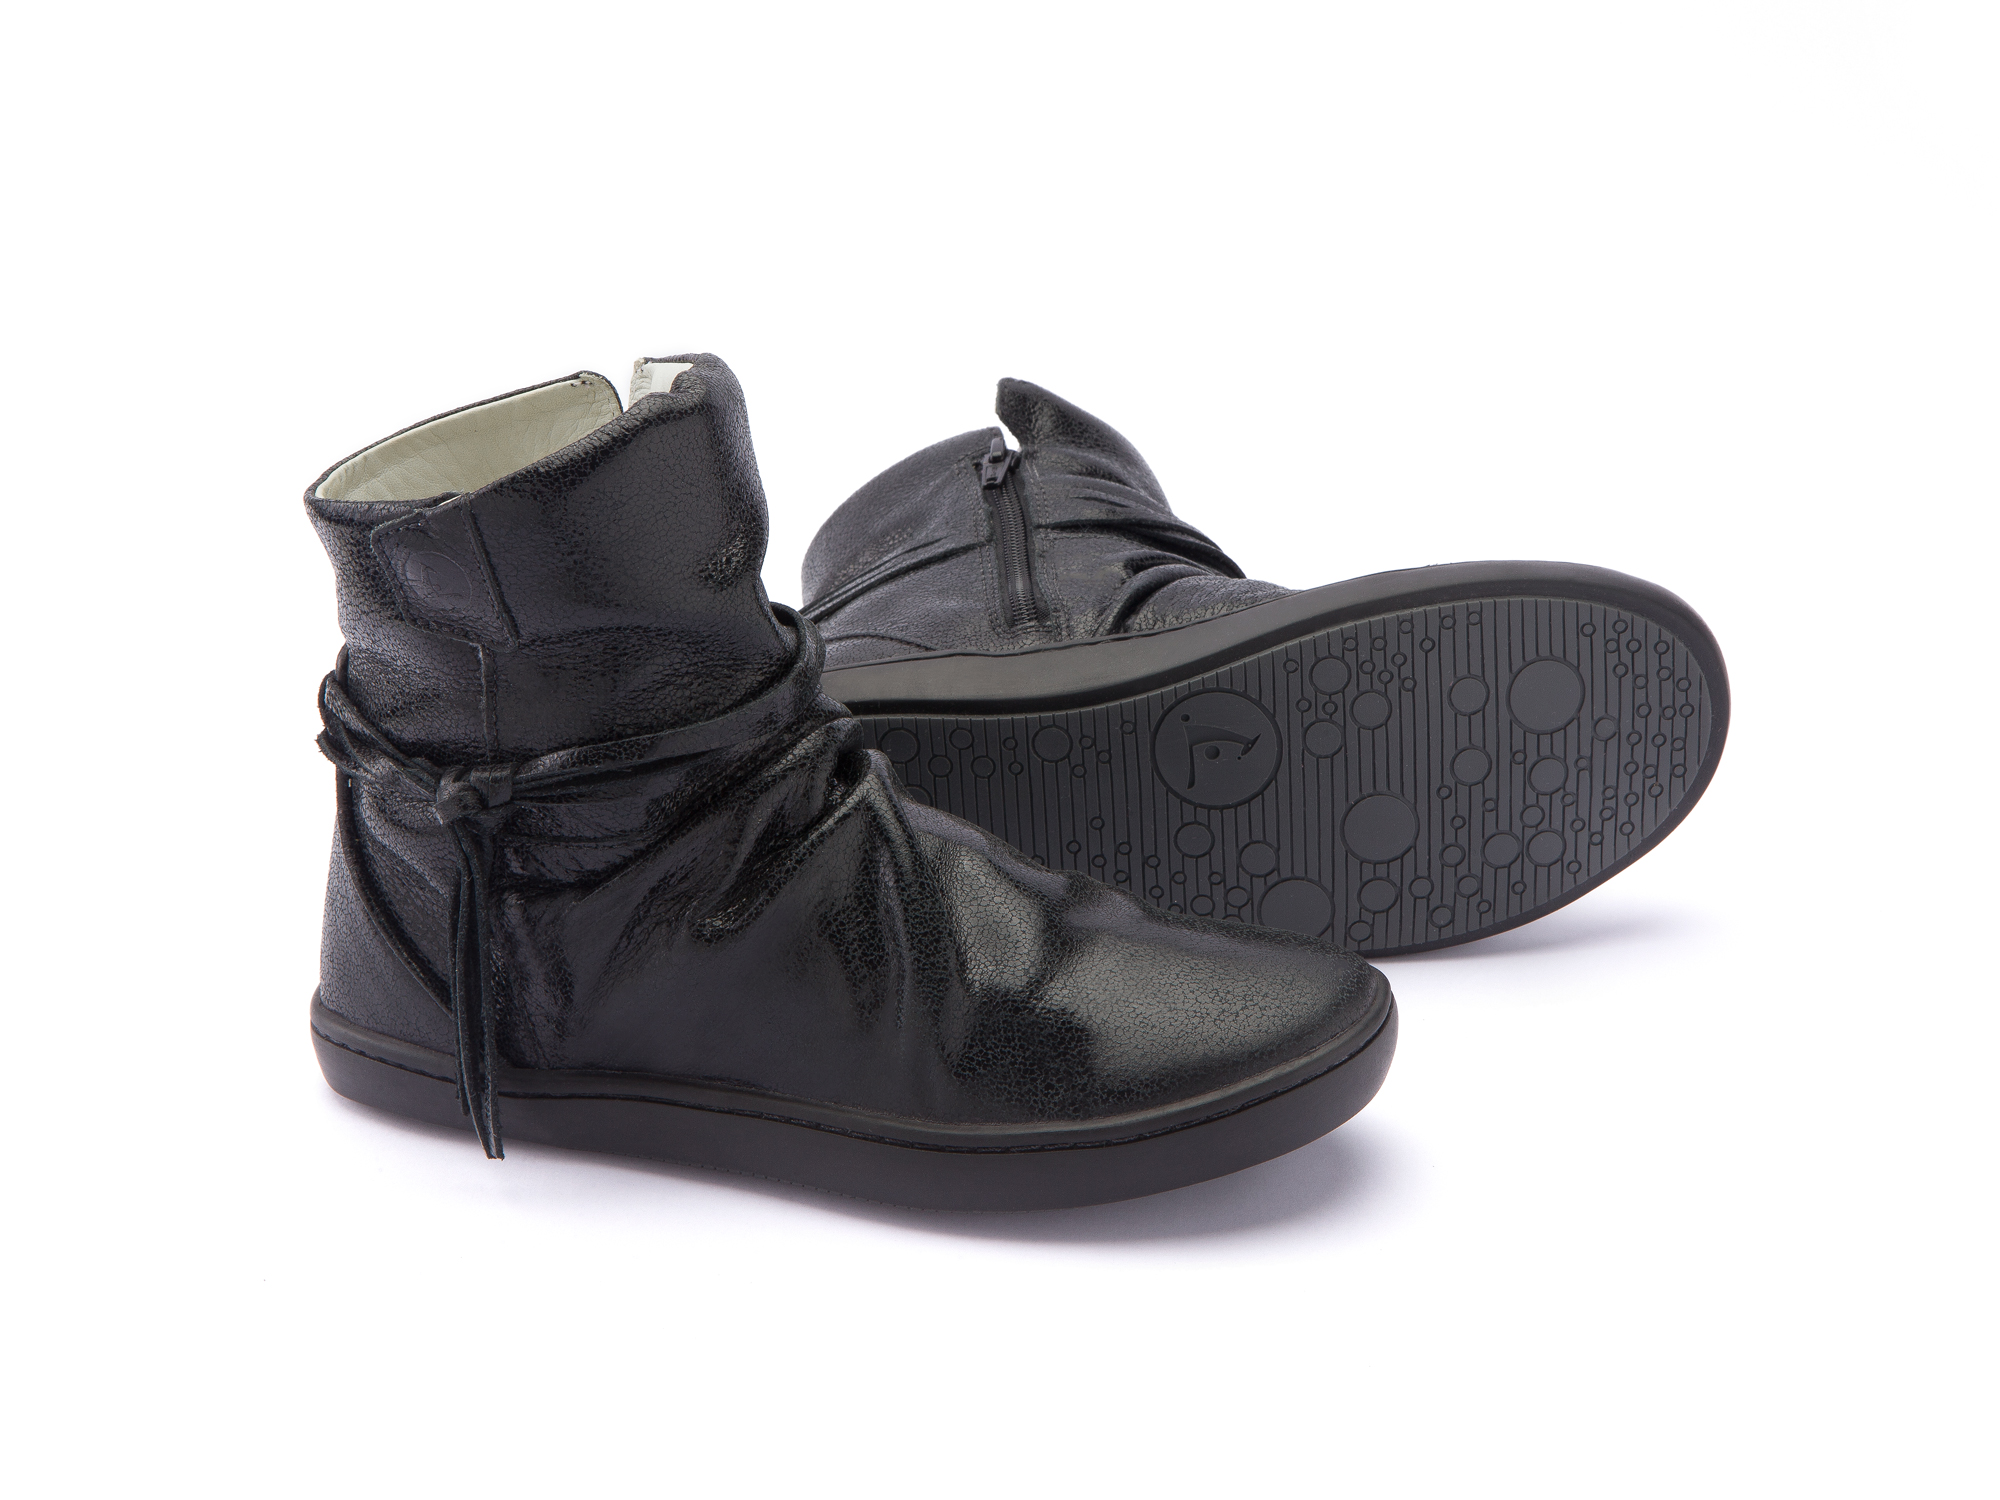 Bota Ridge Black Shine Junior 4 à 8 anos - 2